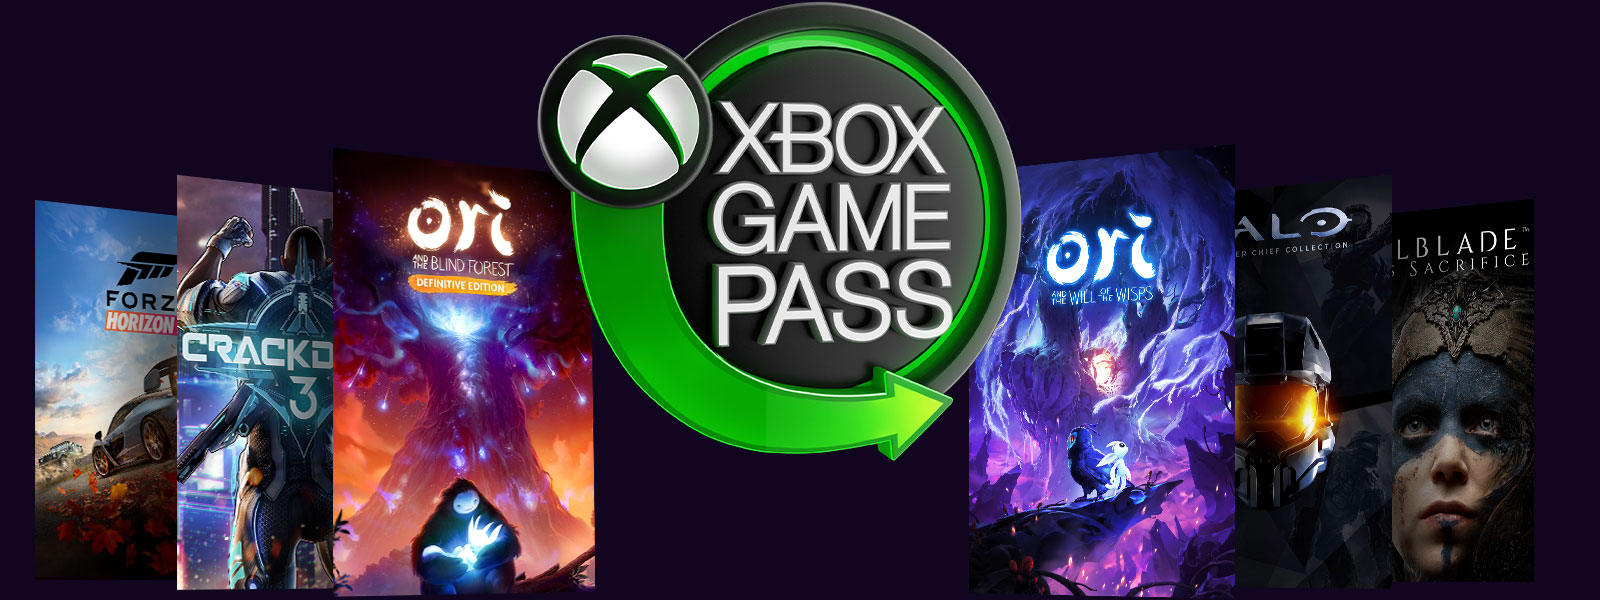 Le logo Xbox Game Pass avec l'image de la boîte d'Ori and the Will of the Wisps et Ori and the Blind Forest, Crackdown 3, Halo, Forza Horizon 4 et Hellblade